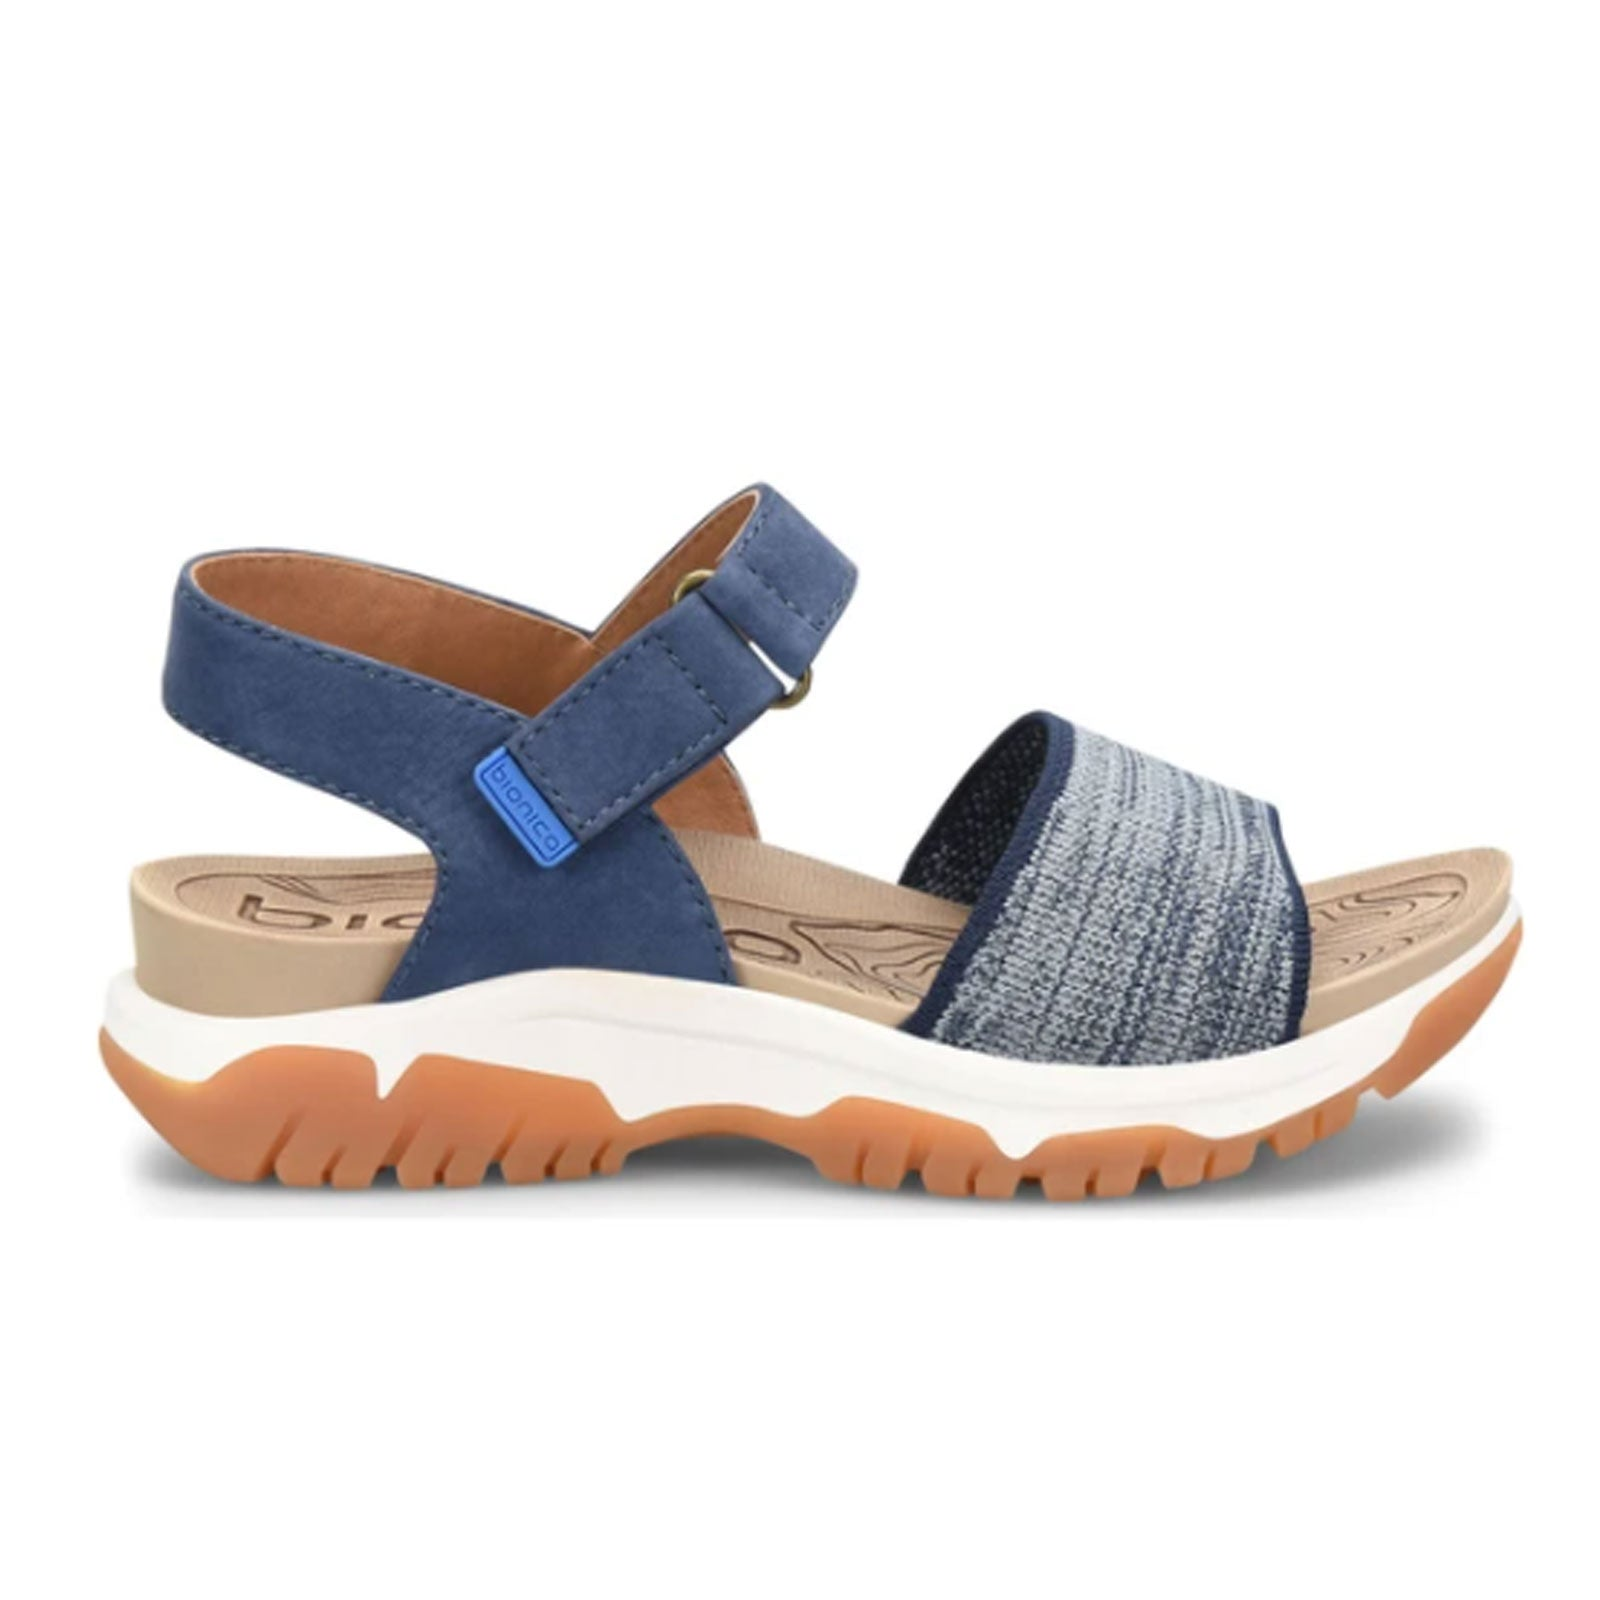 Bionica Nacola (Women) - Navy Heathered Sandals - Backstrap Sandals - The Heel Shoe Fitters